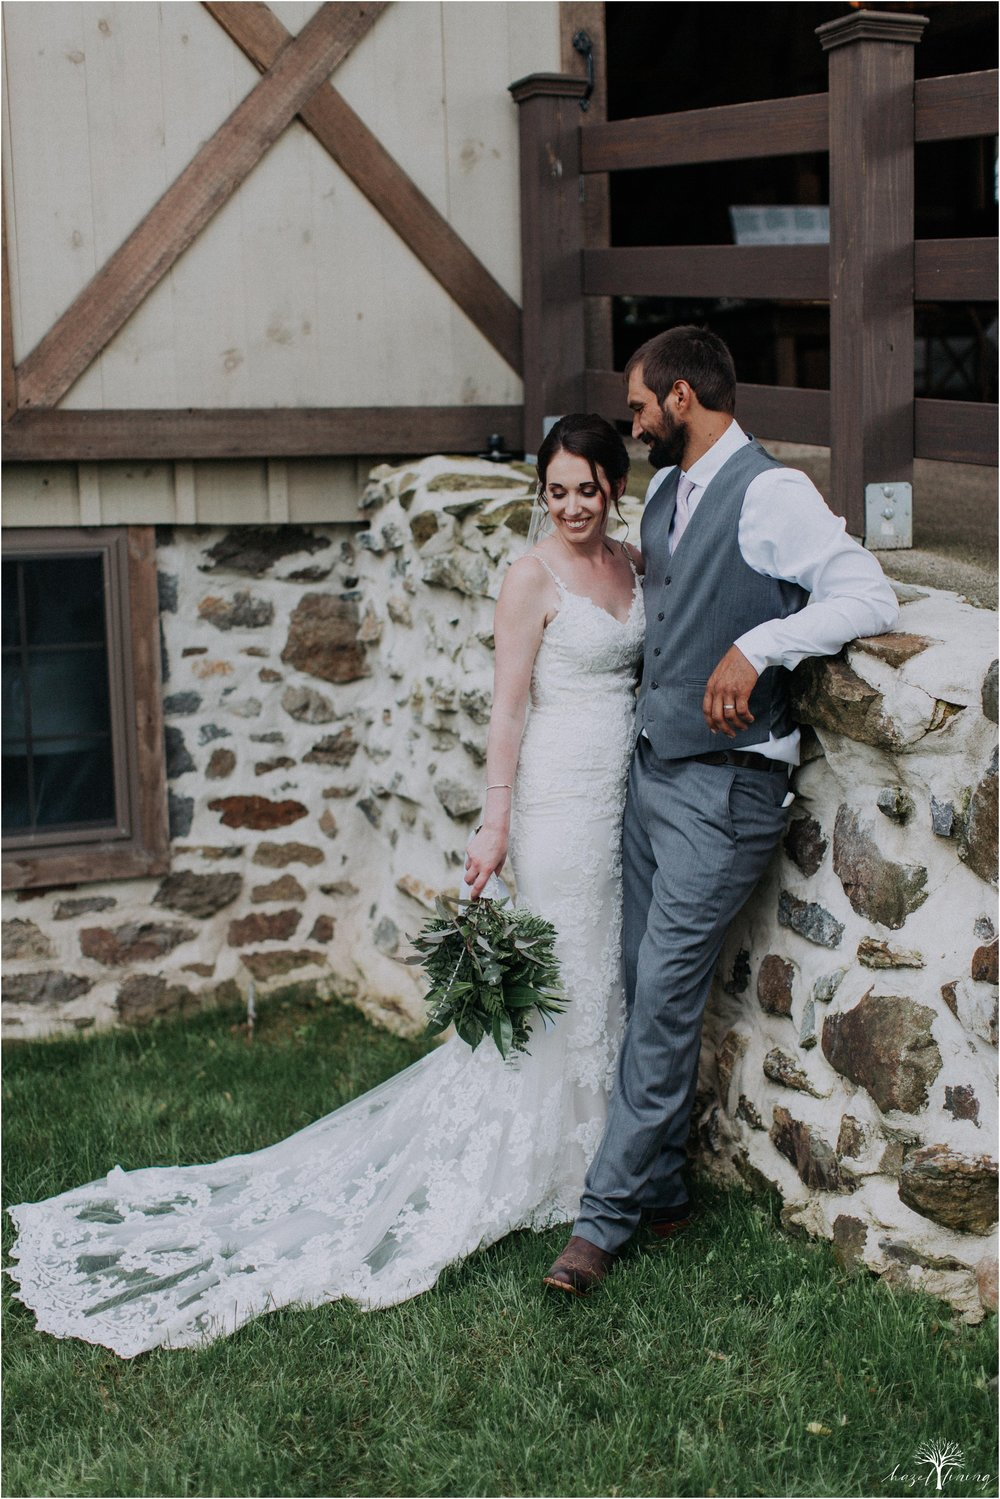 hazel-lining-travel-wedding-elopement-photography-lisa-landon-shoemaker-the-farm-bakery-and-events-bucks-county-quakertown-pennsylvania-summer-country-outdoor-farm-wedding_0104.jpg